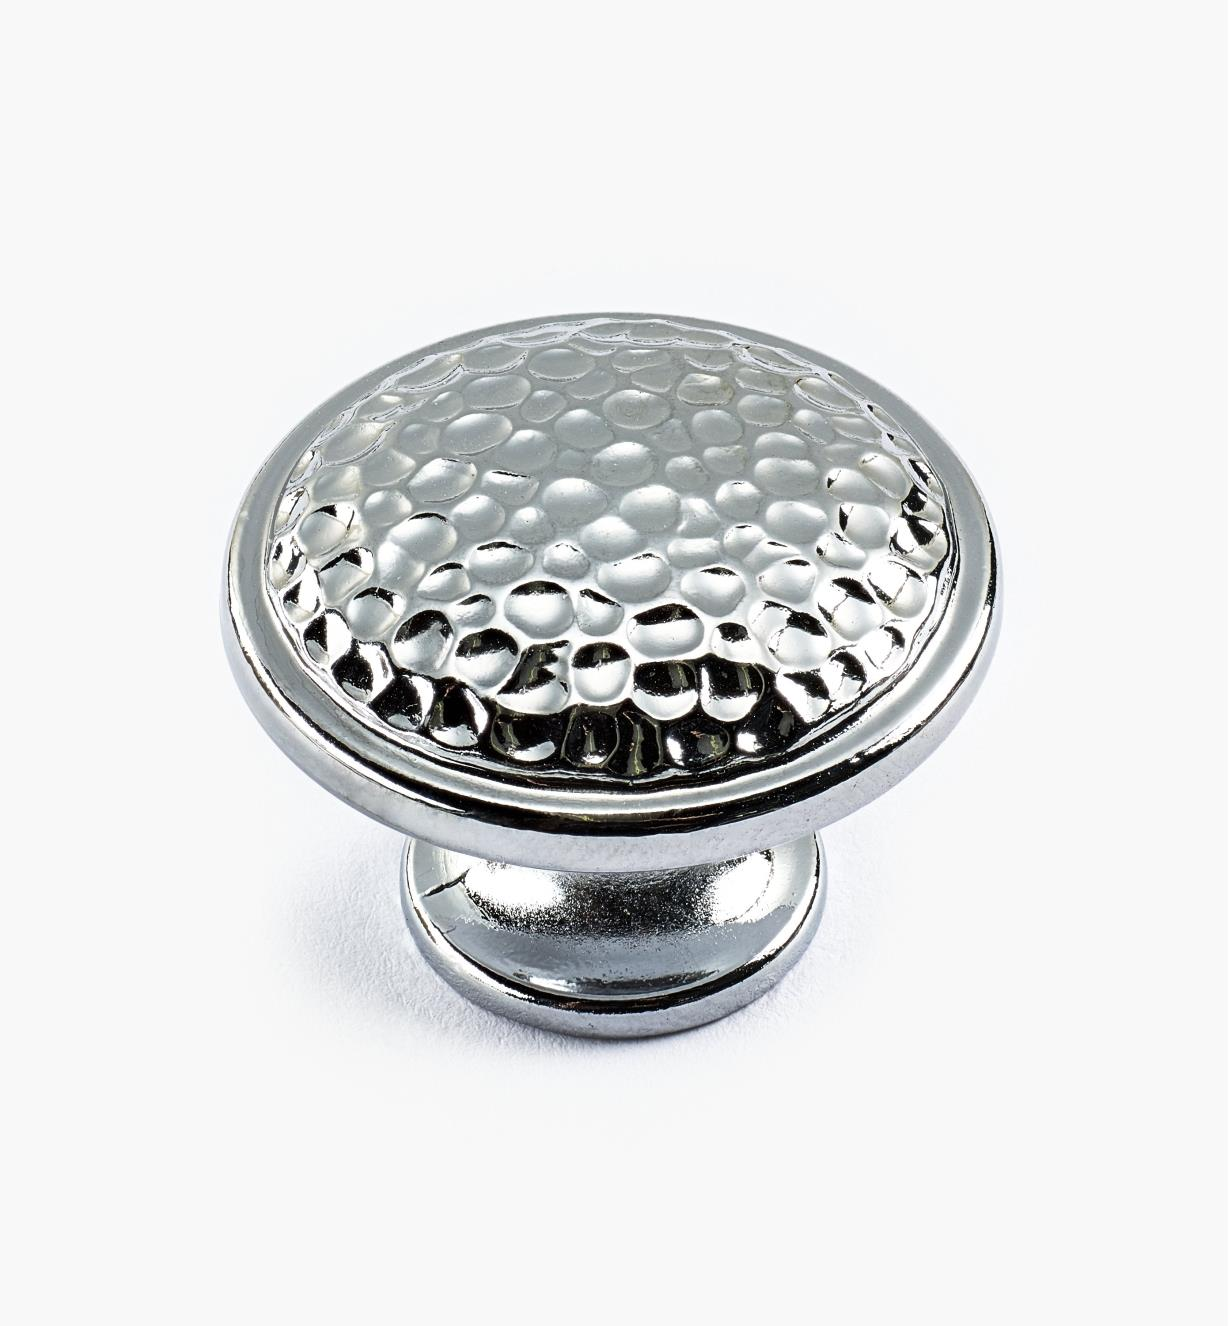 00A7681 - Cobble Suite - 30mm x 22mm Polished Chrome Knob